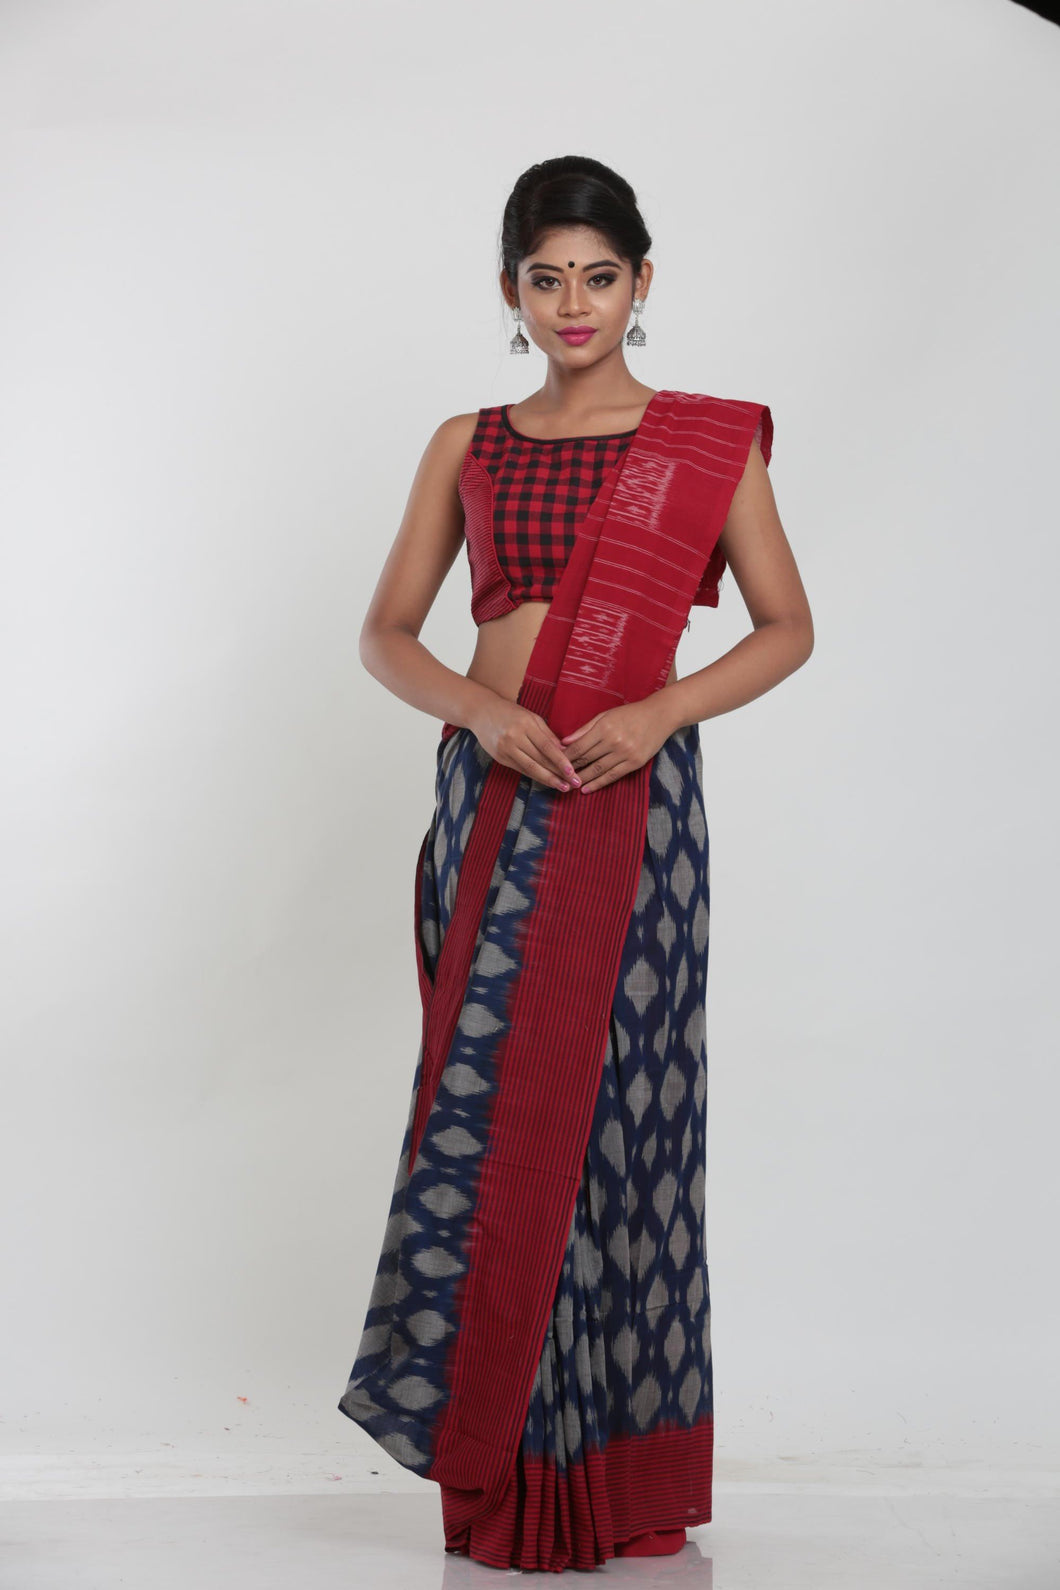 SAMBALPURI COTTON IKKAT SAREE WITH CONTRASTING TIE AND DYE WEAVING - Keya Seth Exclusive